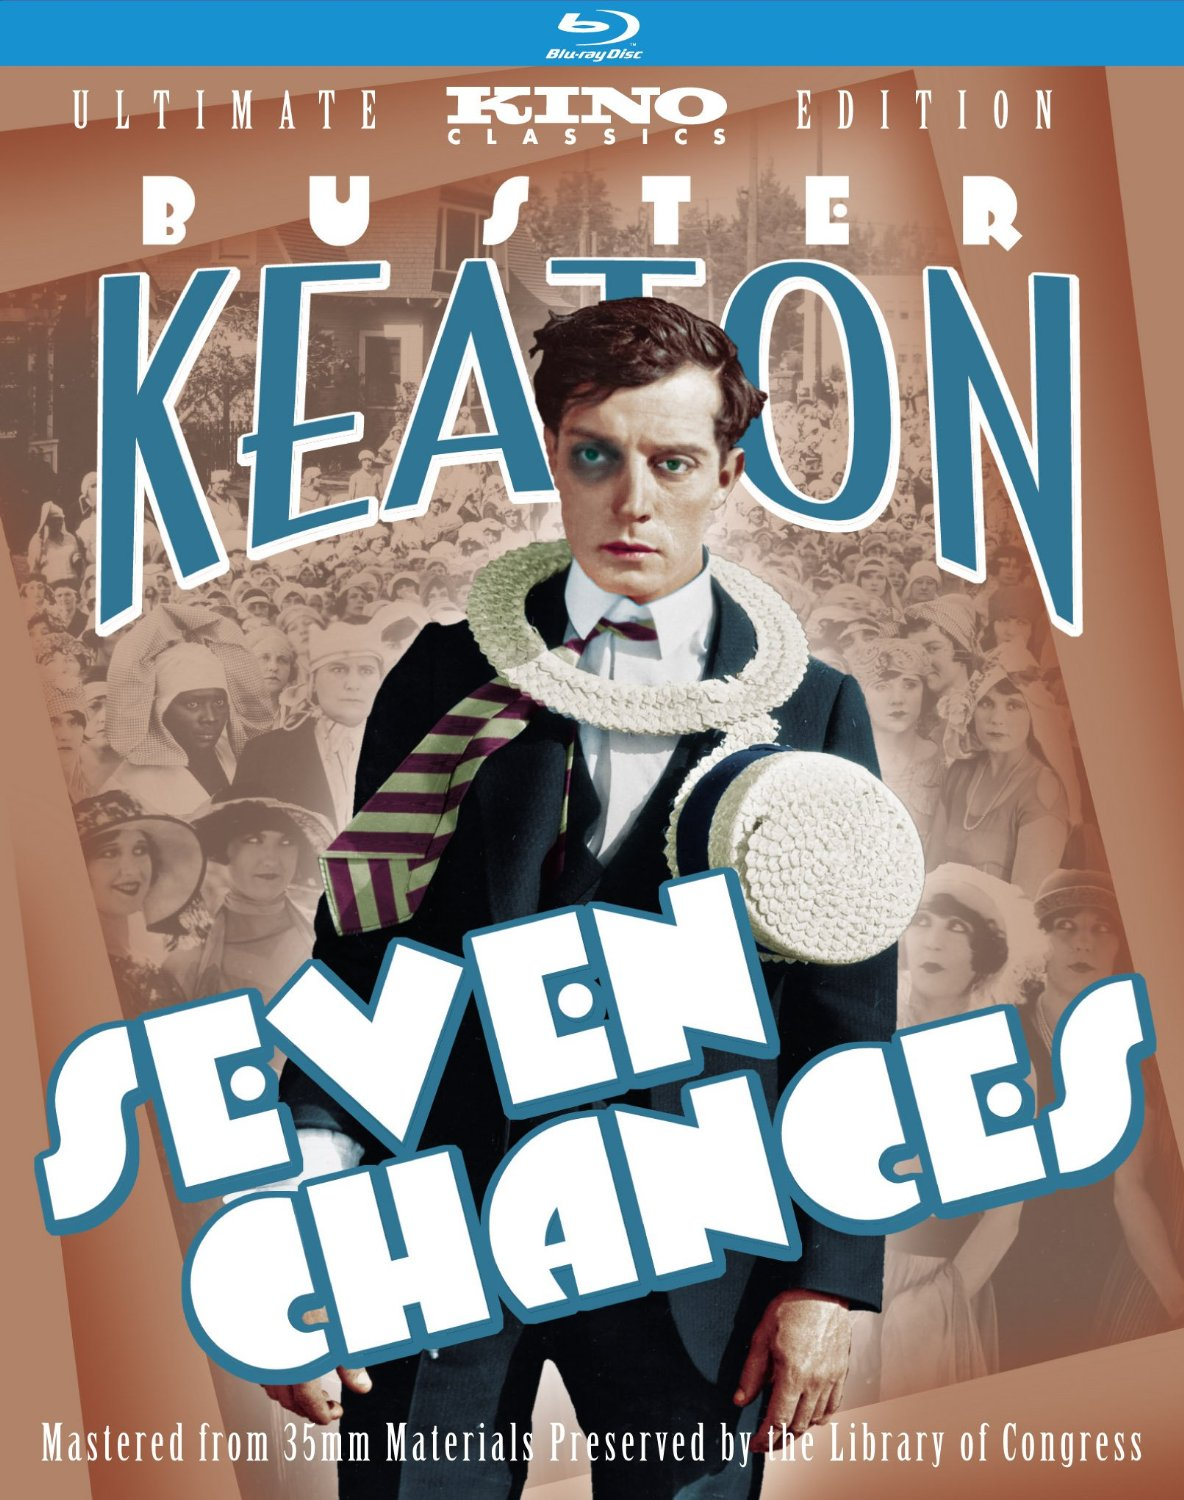 Seven Chances (1925) starring Buster Keaton